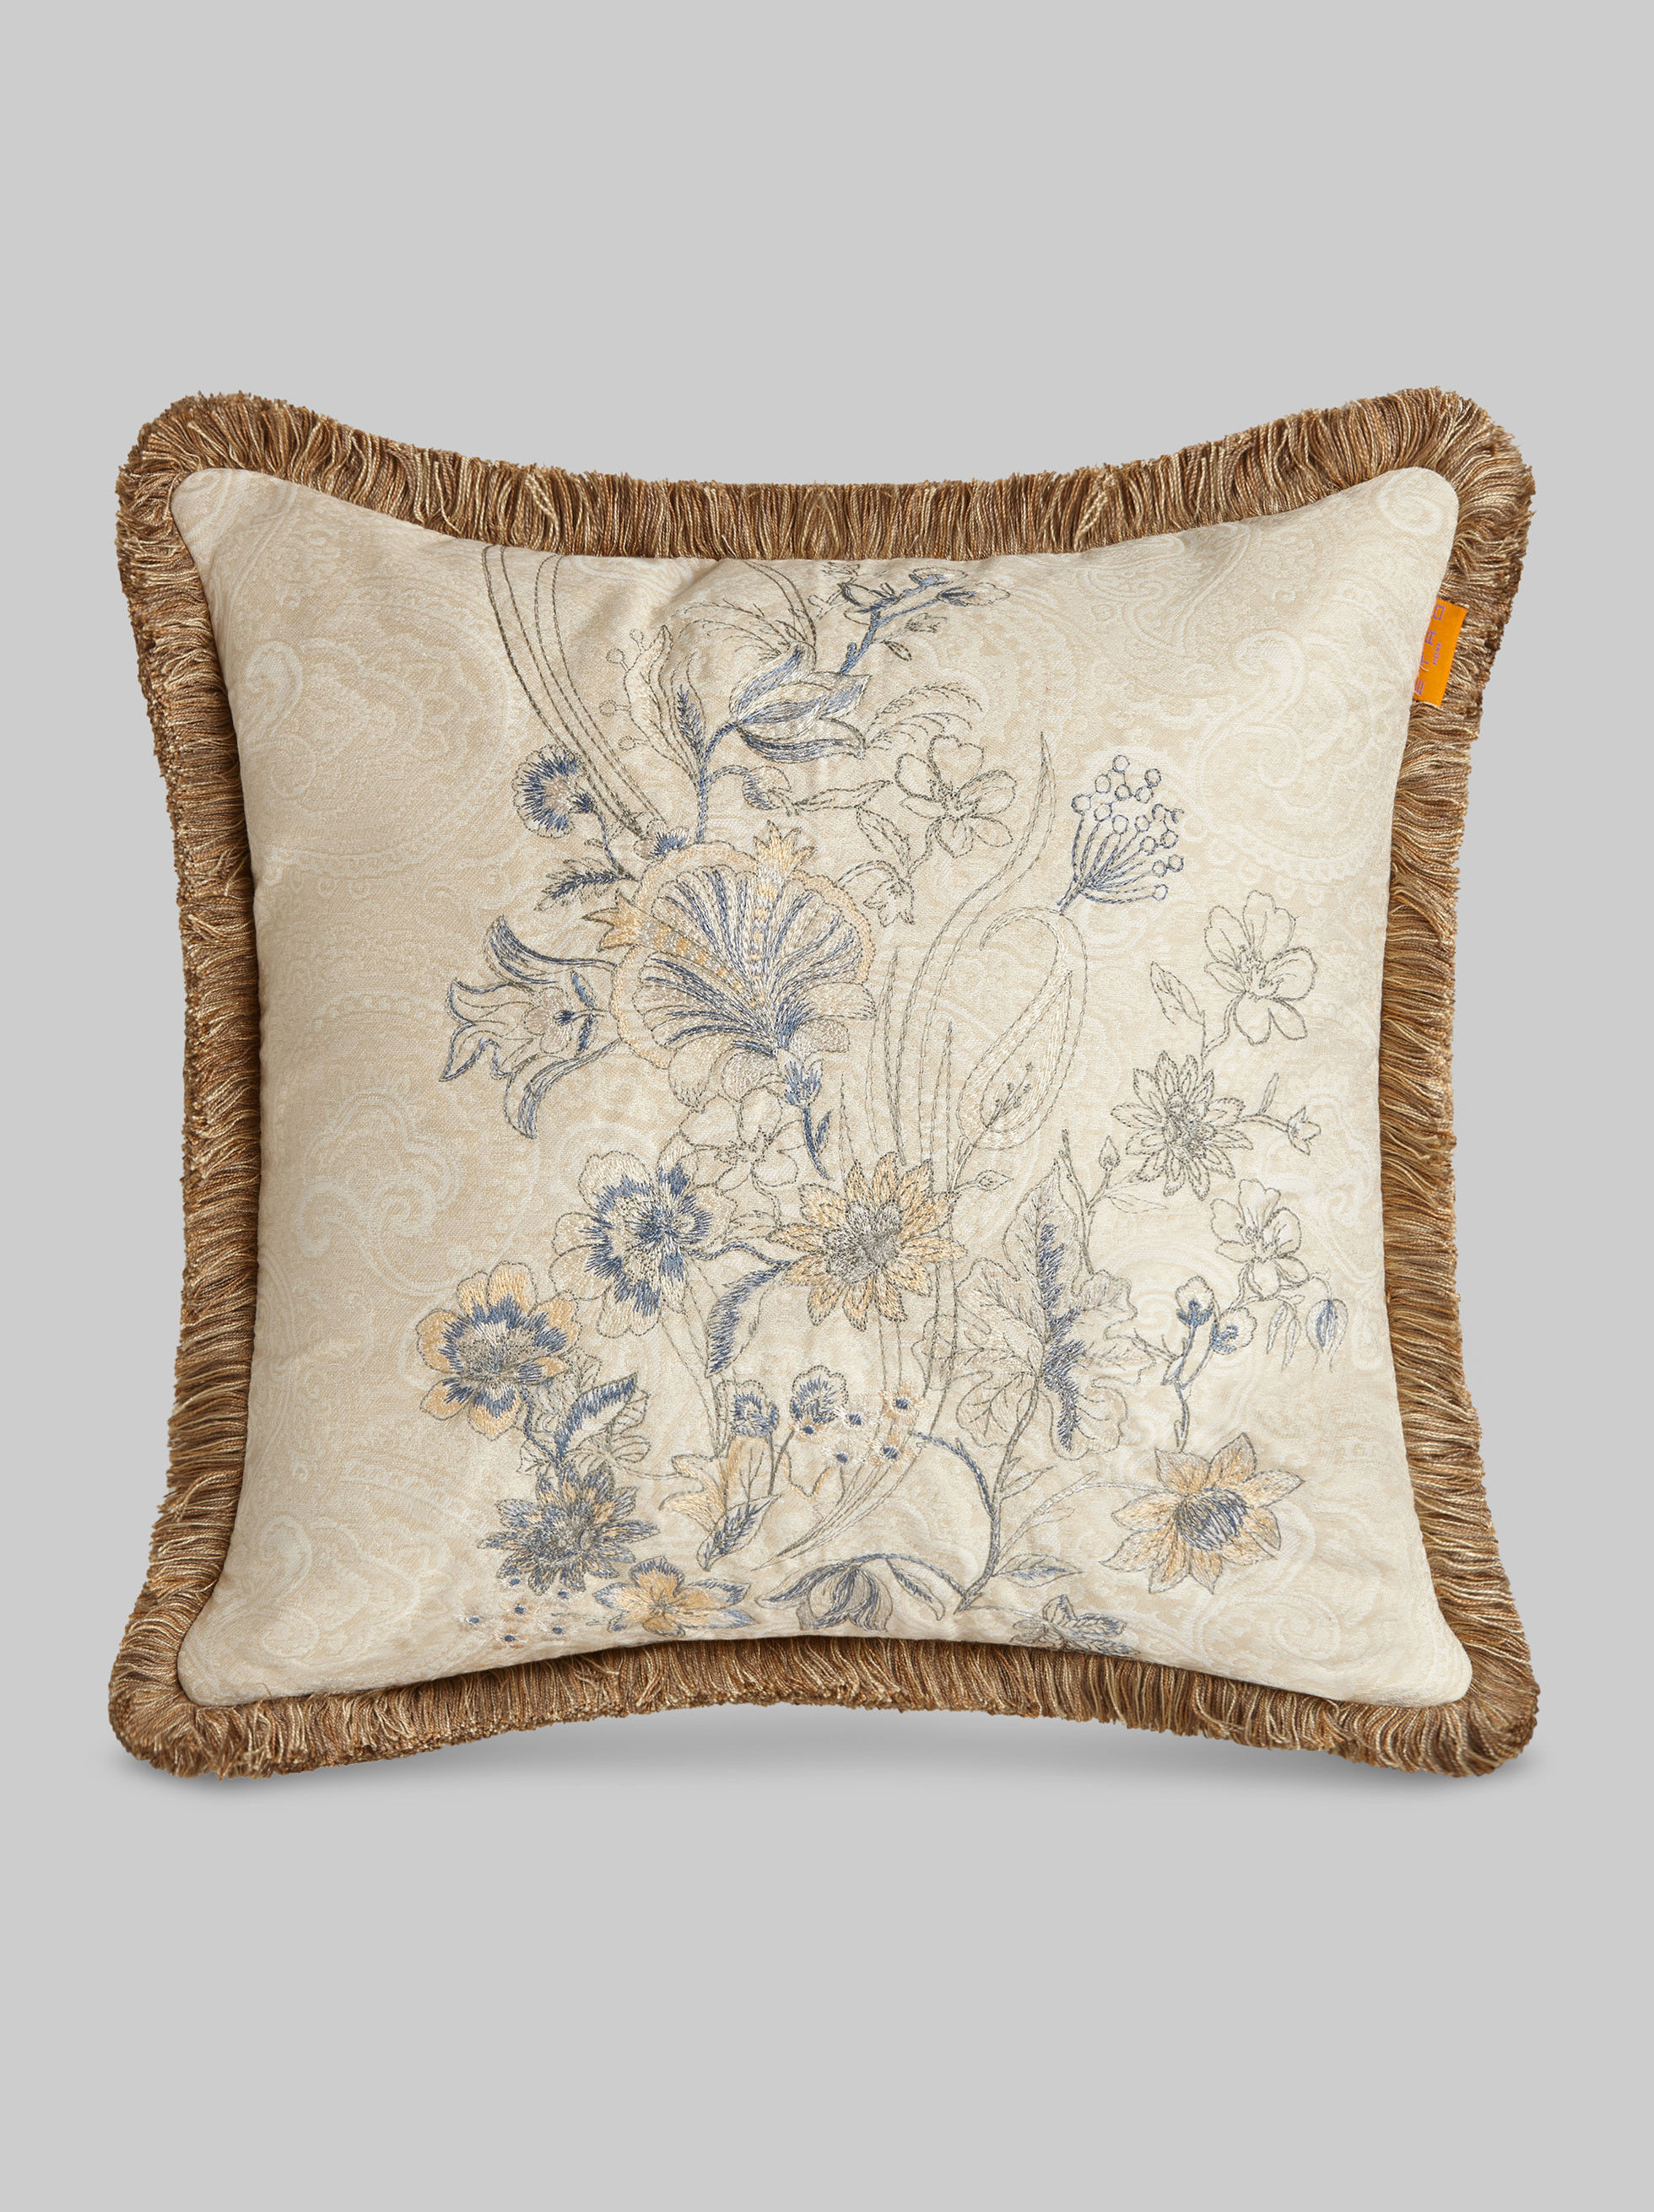 EMBROIDERED CUSHION WITH FLORAL PATTERNS